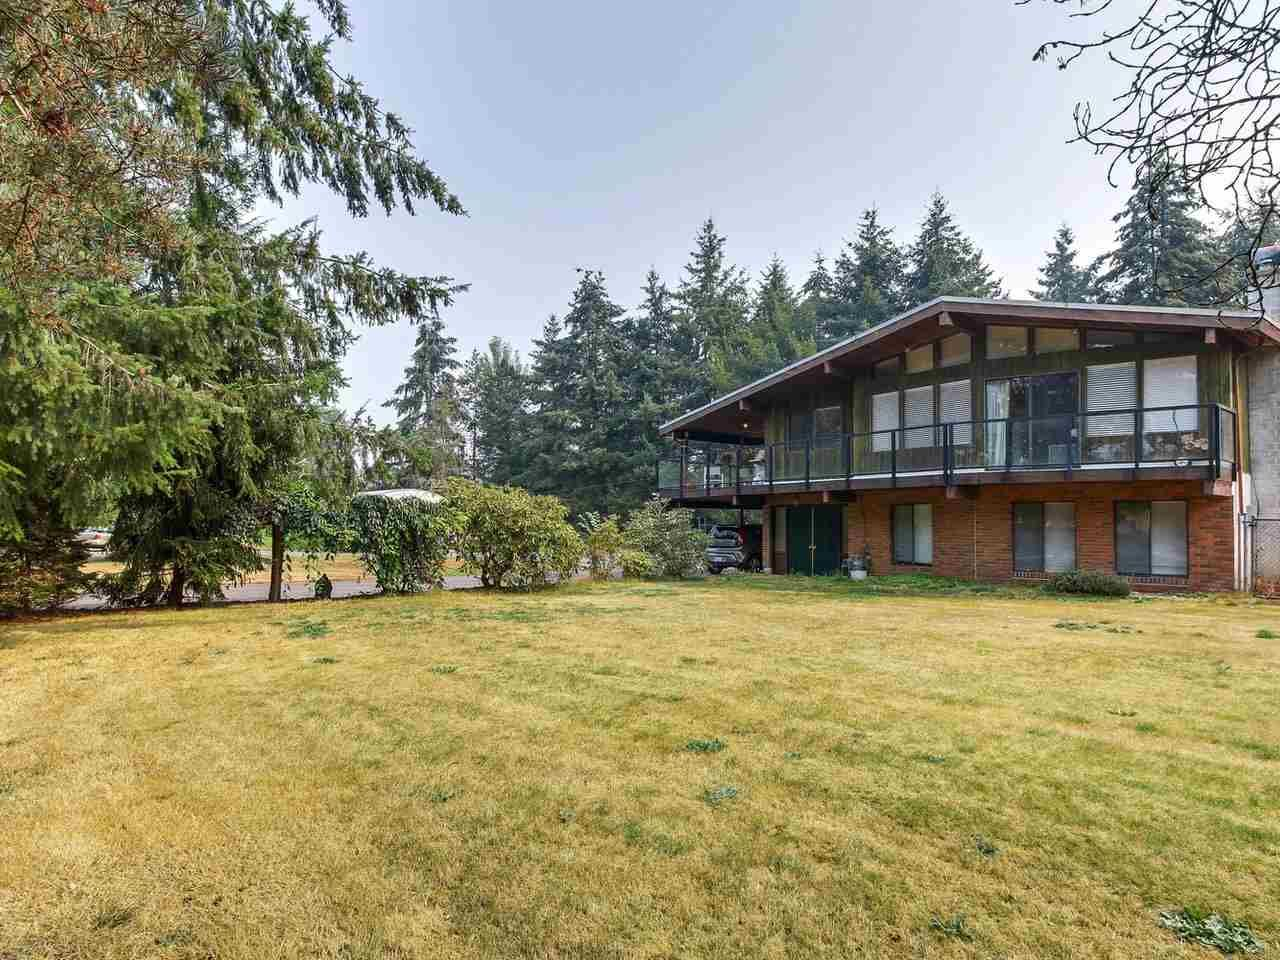 Main Photo: 2708 210 STREET in Langley: Campbell Valley House for sale : MLS®# R2298142